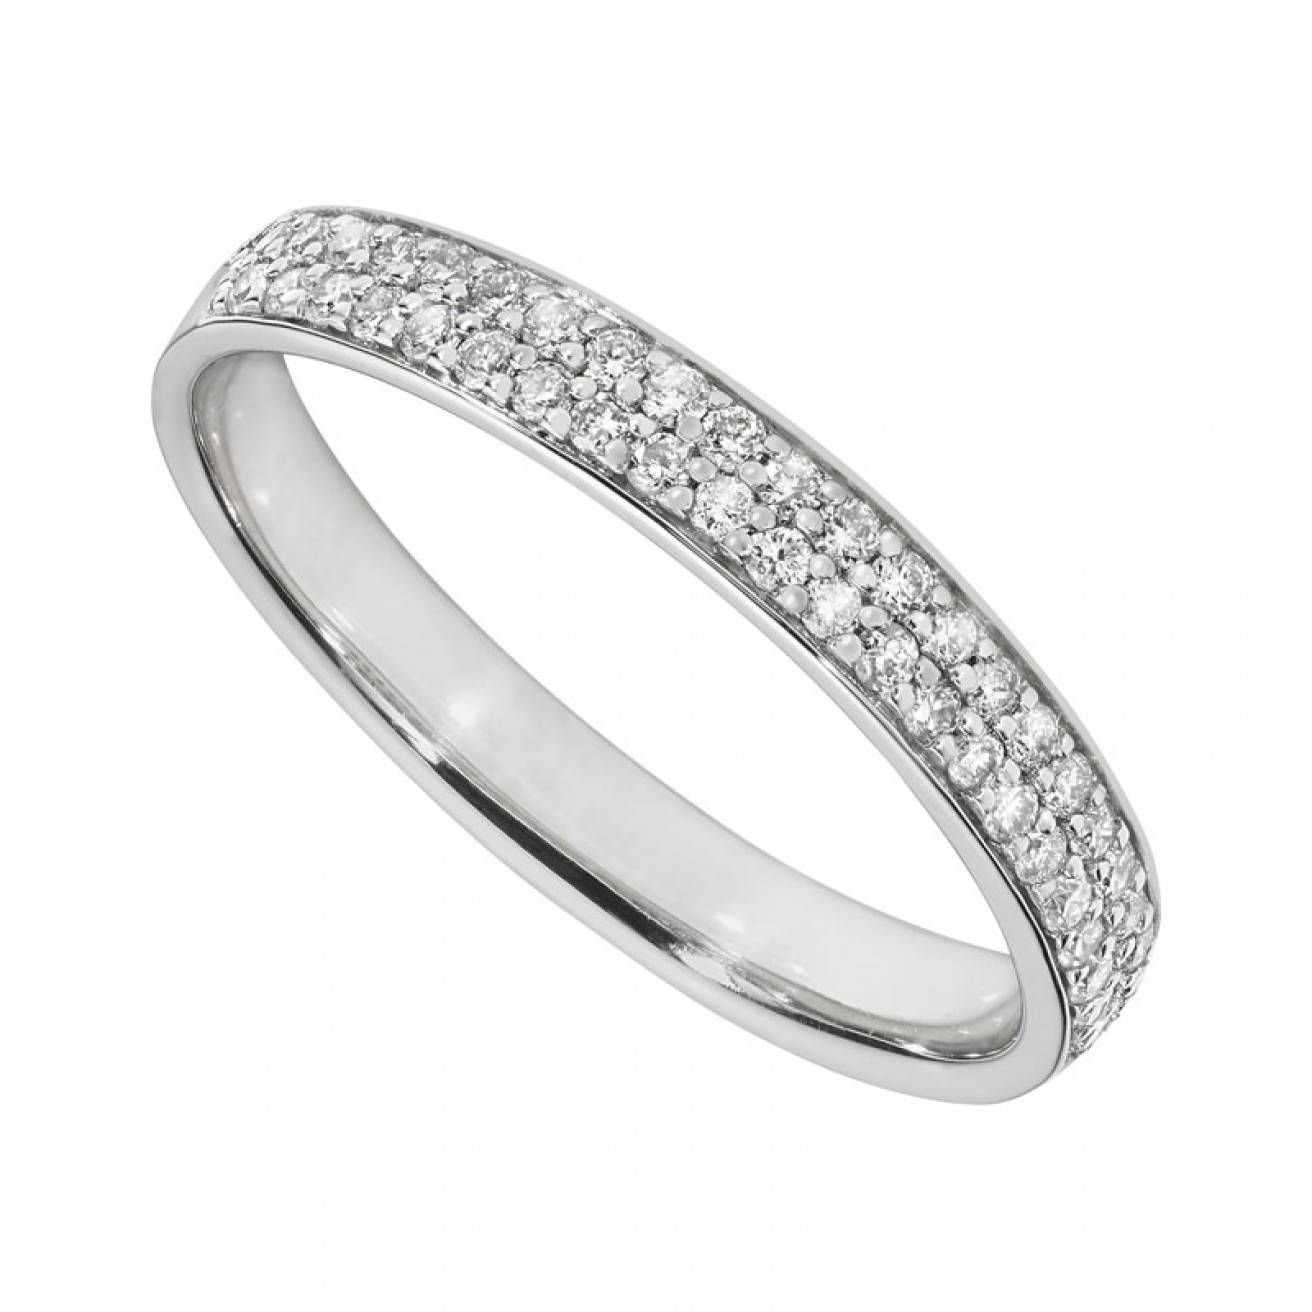 buy wedding rings online fieldsie for irish wedding bands for women gallery - Discount Wedding Rings Women